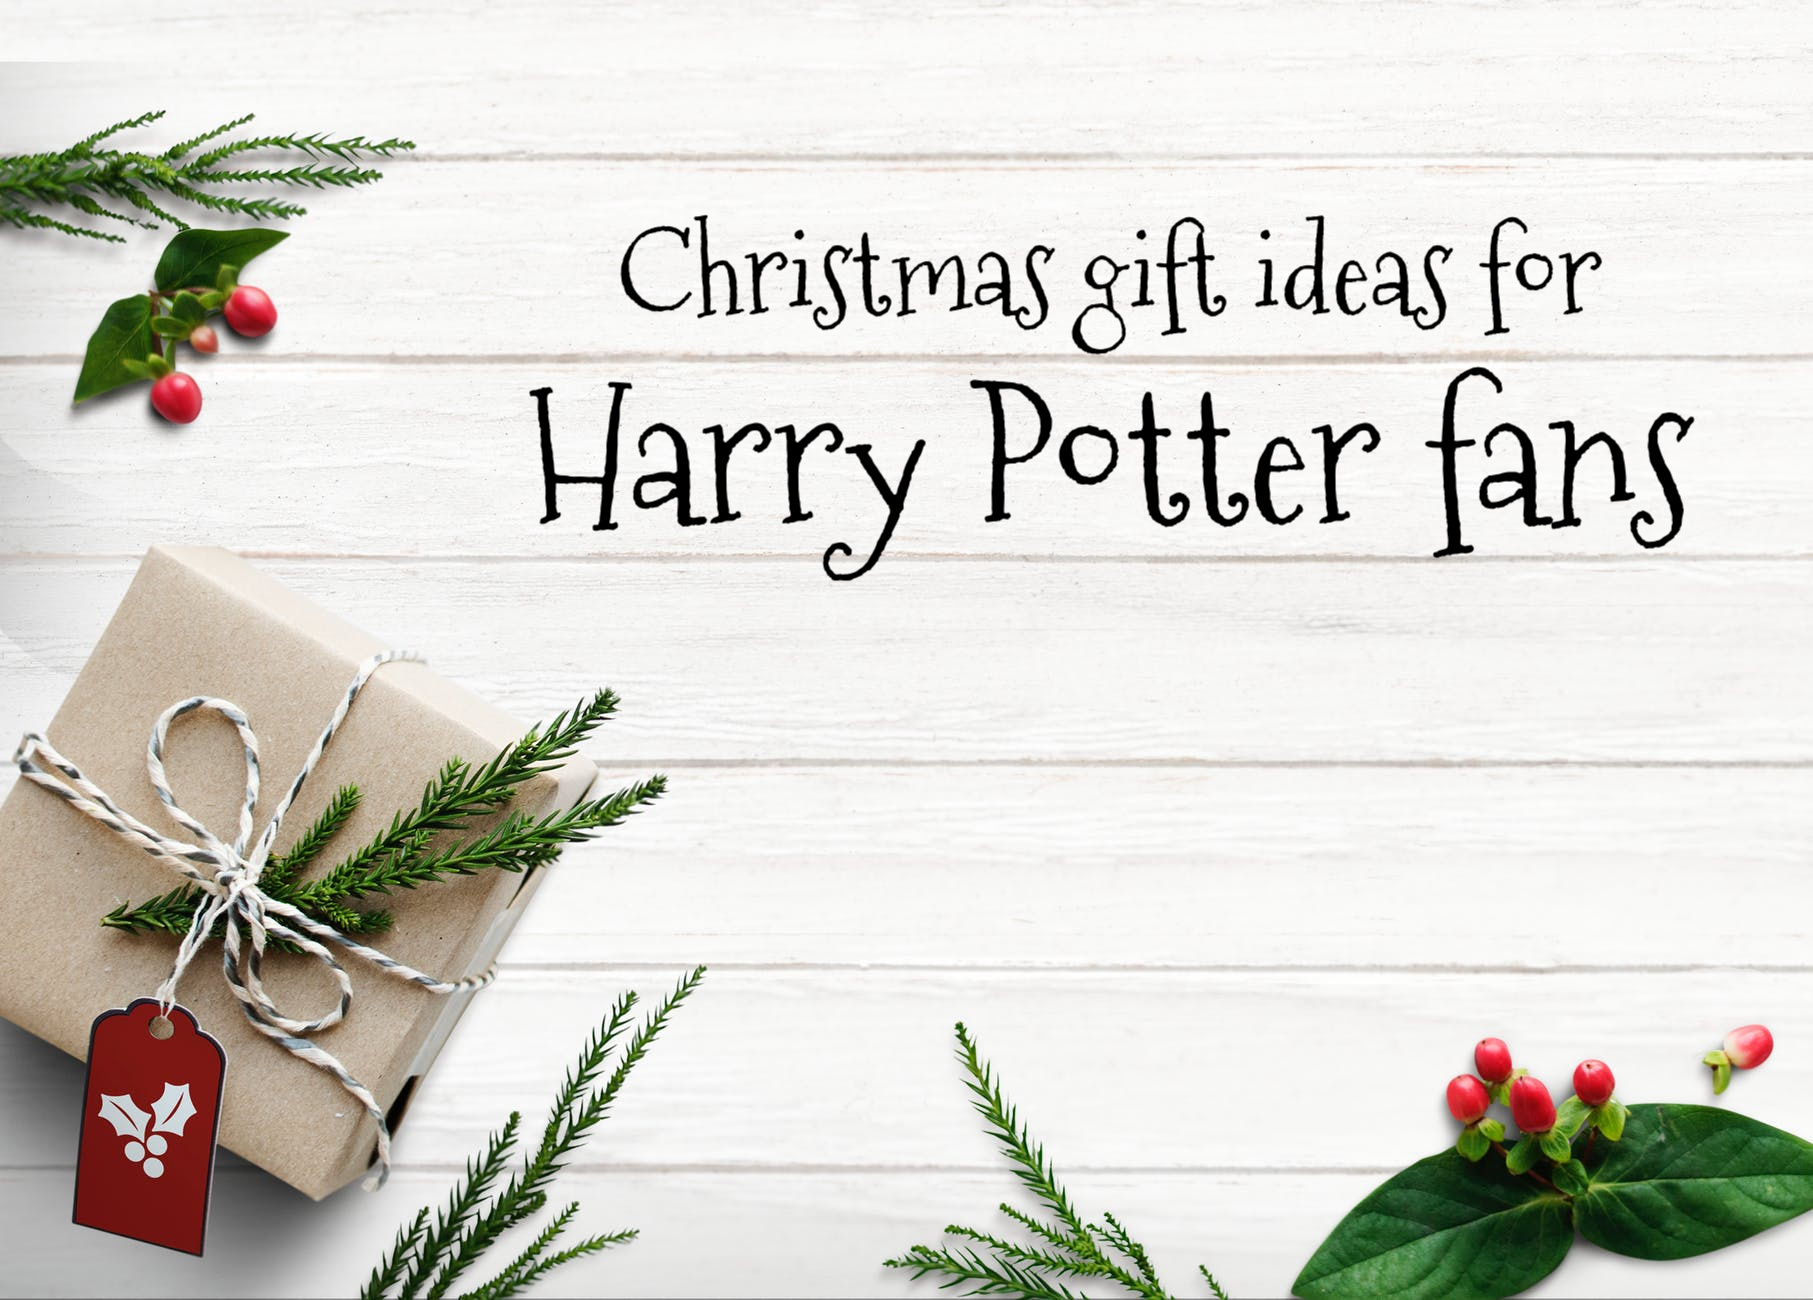 Christmas gift ideas for Harry Potter fans